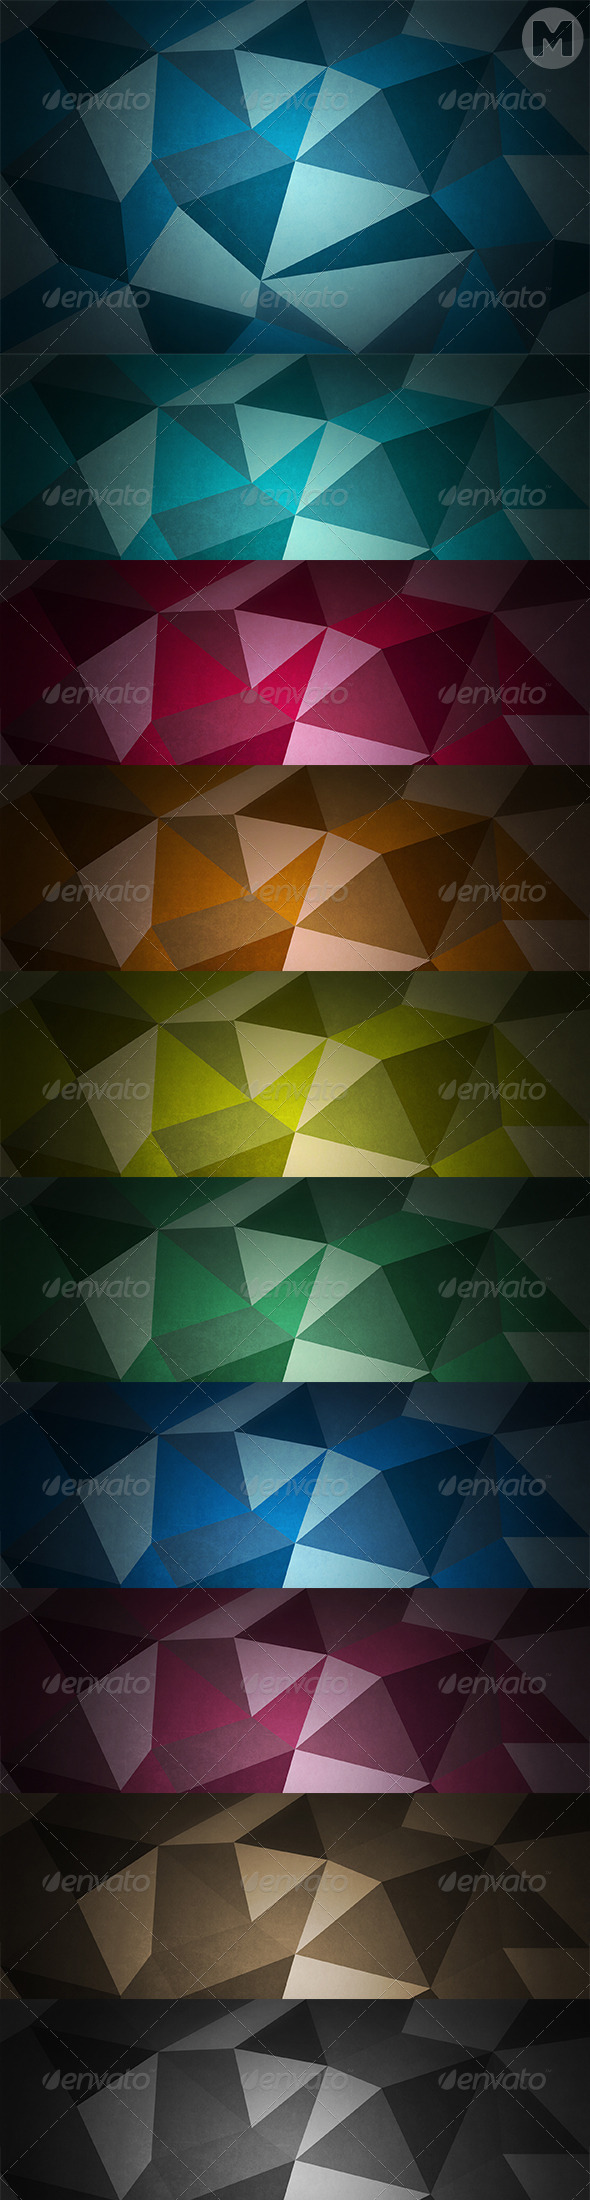 GraphicRiver Polygon Backgrounds 7591732